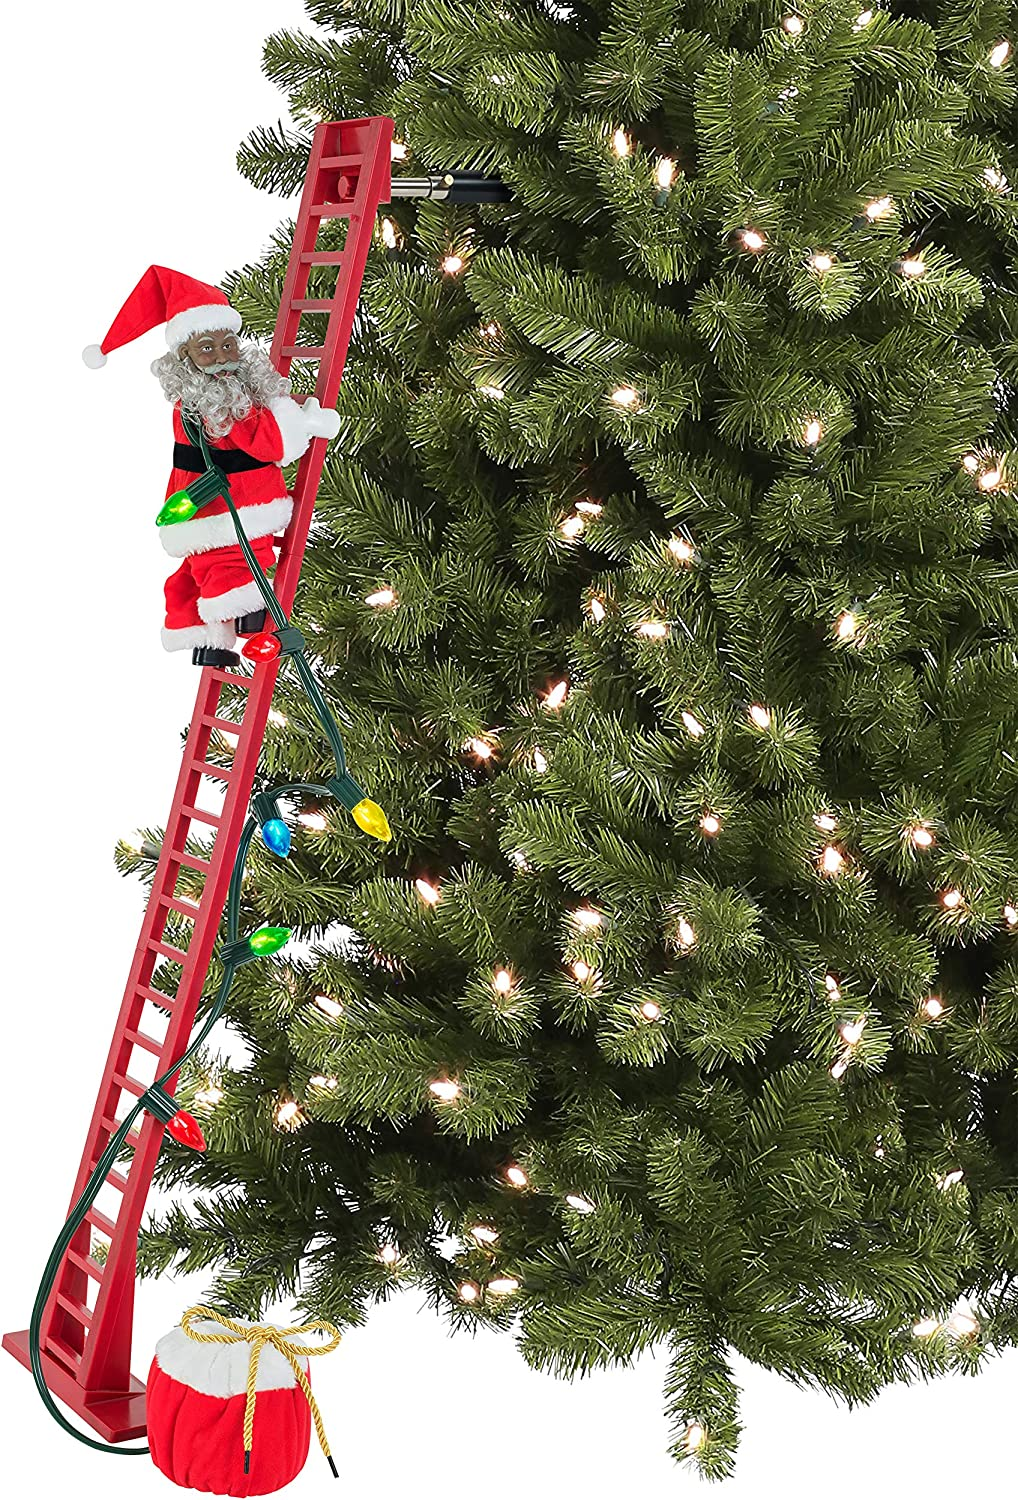 Mr. Christmas 37221 Super Climbing African American Santa Holiday Decoration, 40-inch, Red